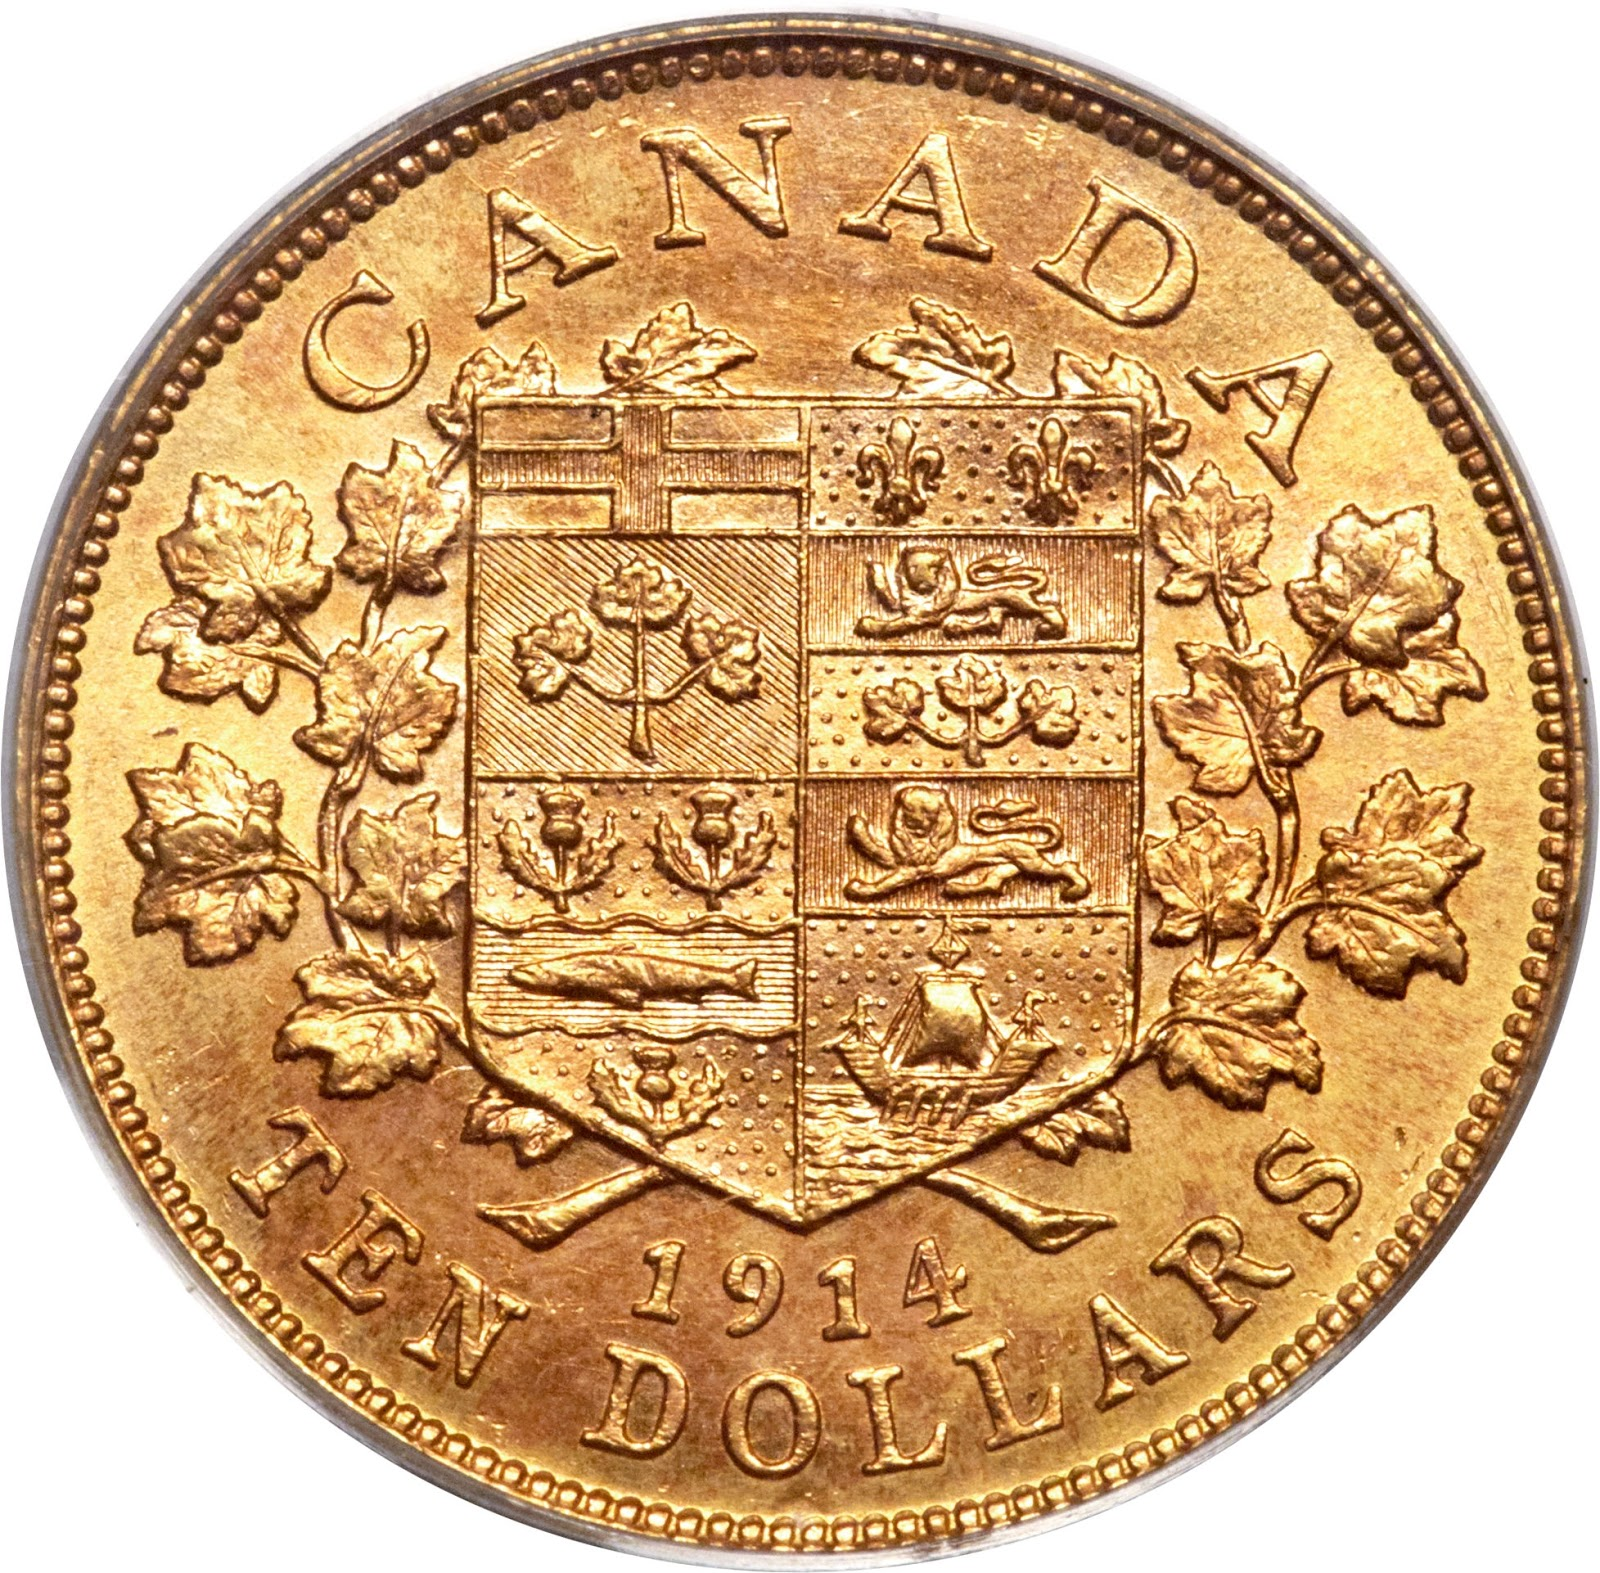 Many Of These Coins Are Silver And A Few Gold If You Ever Wondered Coin Can Be The Worry With Tungsten Is Possibility